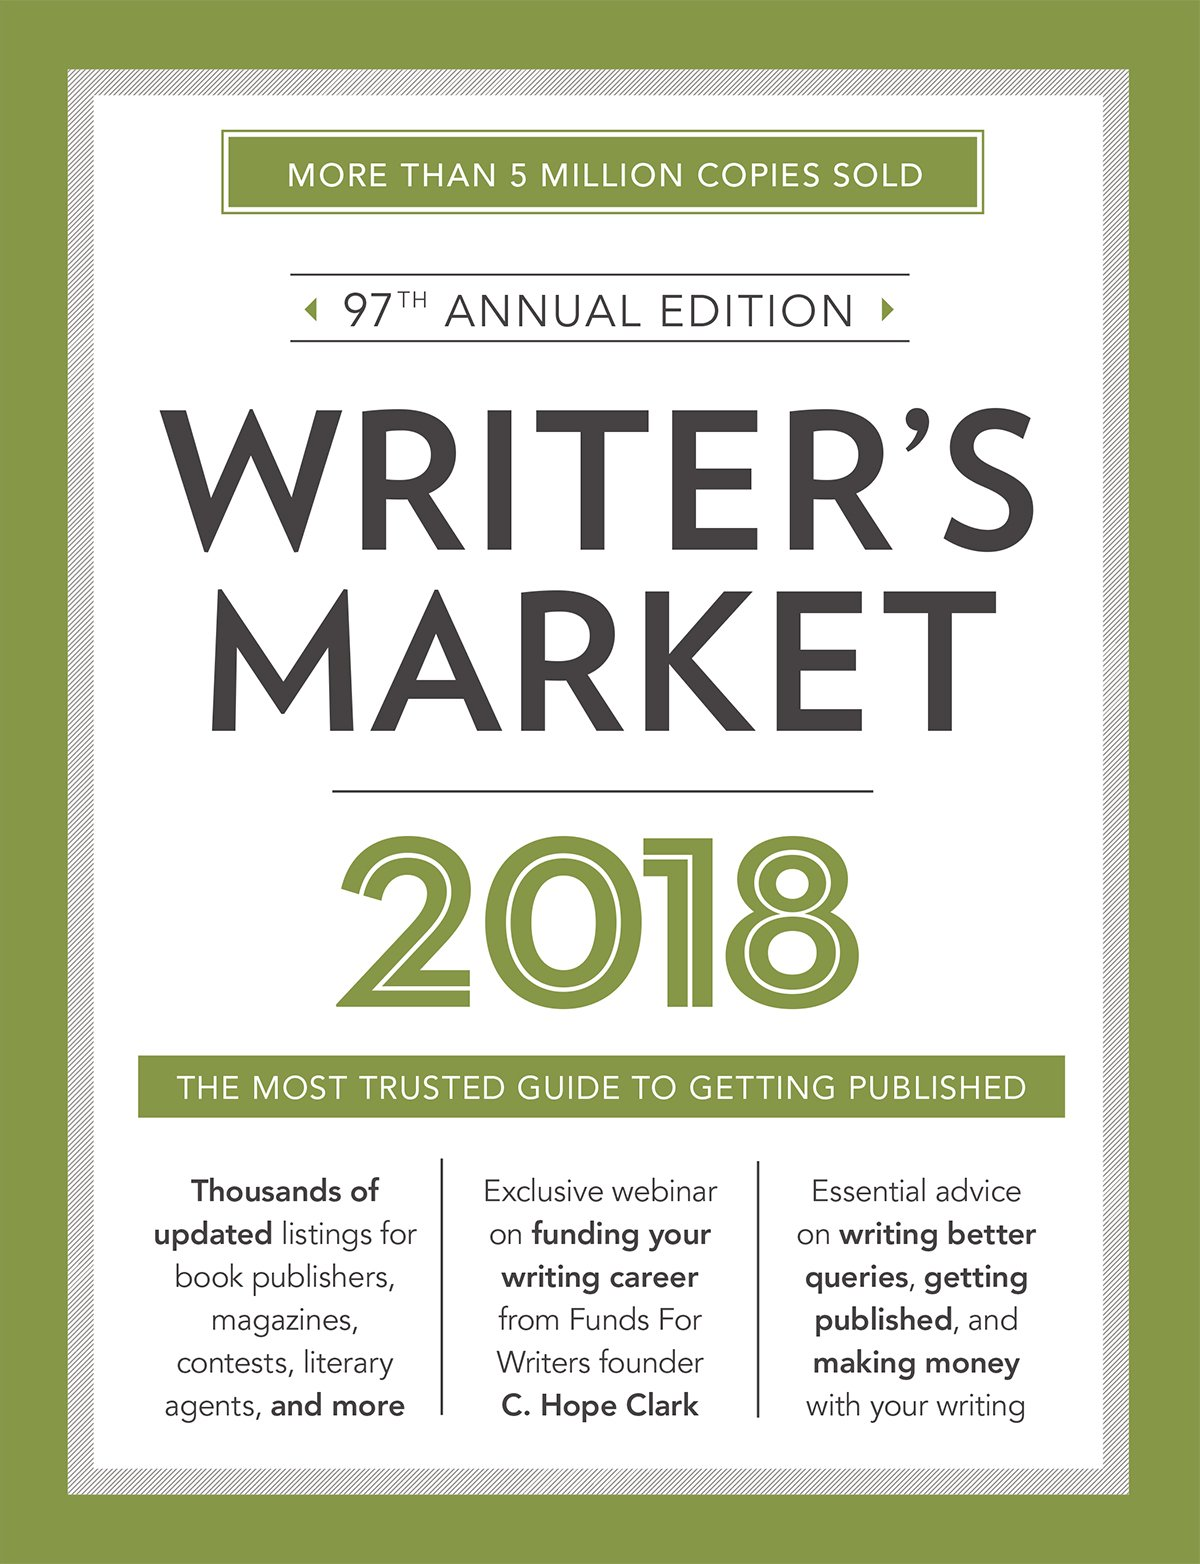 Writer's Market 2018: The Most Trusted Guide to Getting Published Paperback – 29 Sep 2017 Robert Lee Brewer Writer's Digest Books 1440352631 Writing Skills